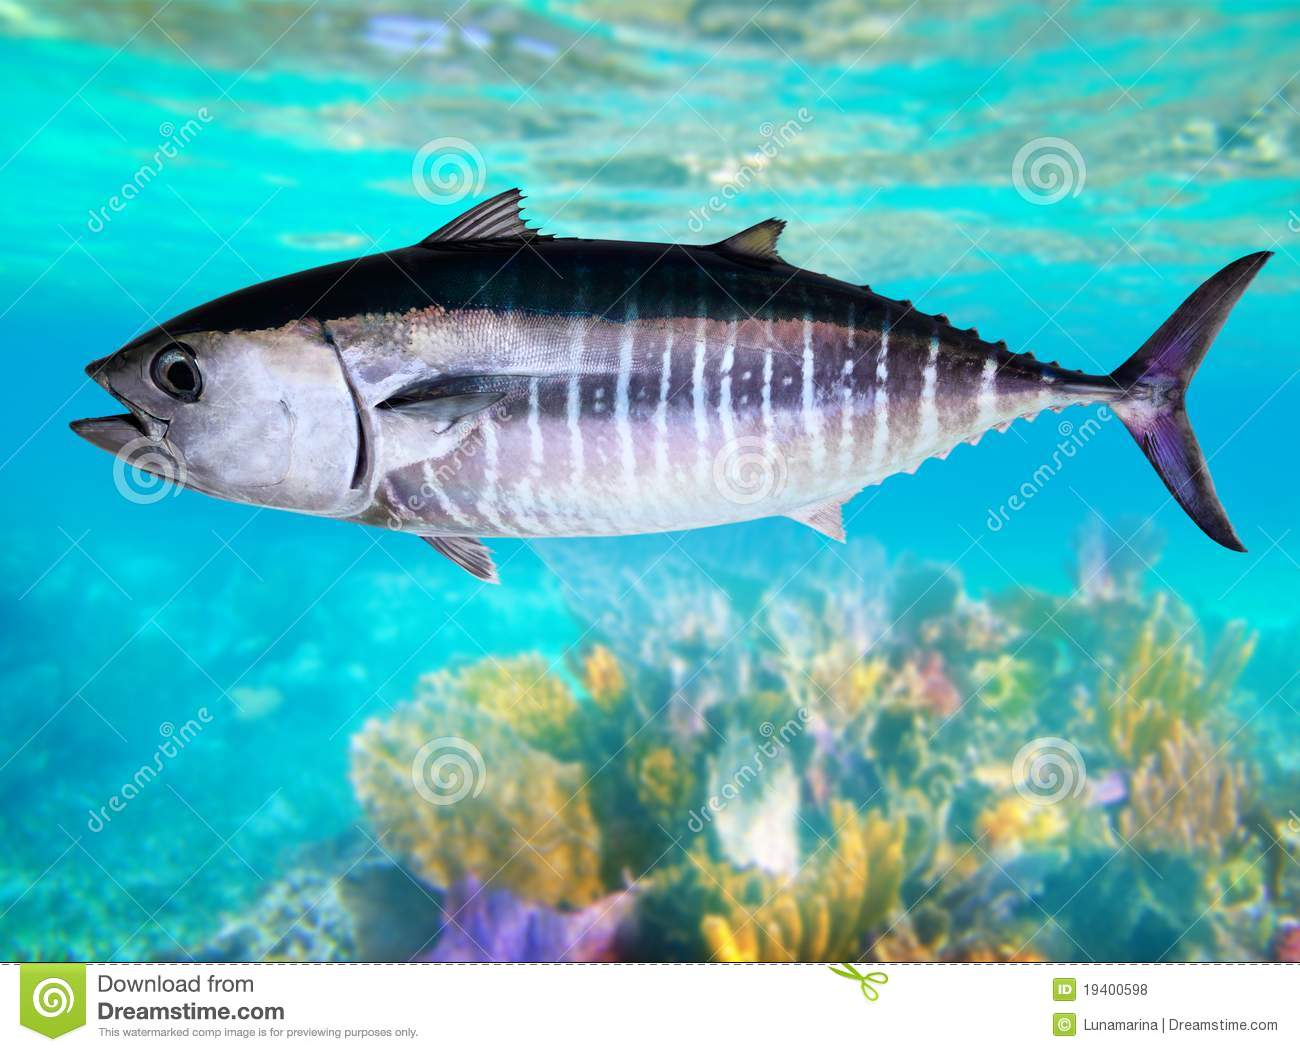 Bluefin tuna fish underwater swimming royalty free stock for Dream of fish swimming